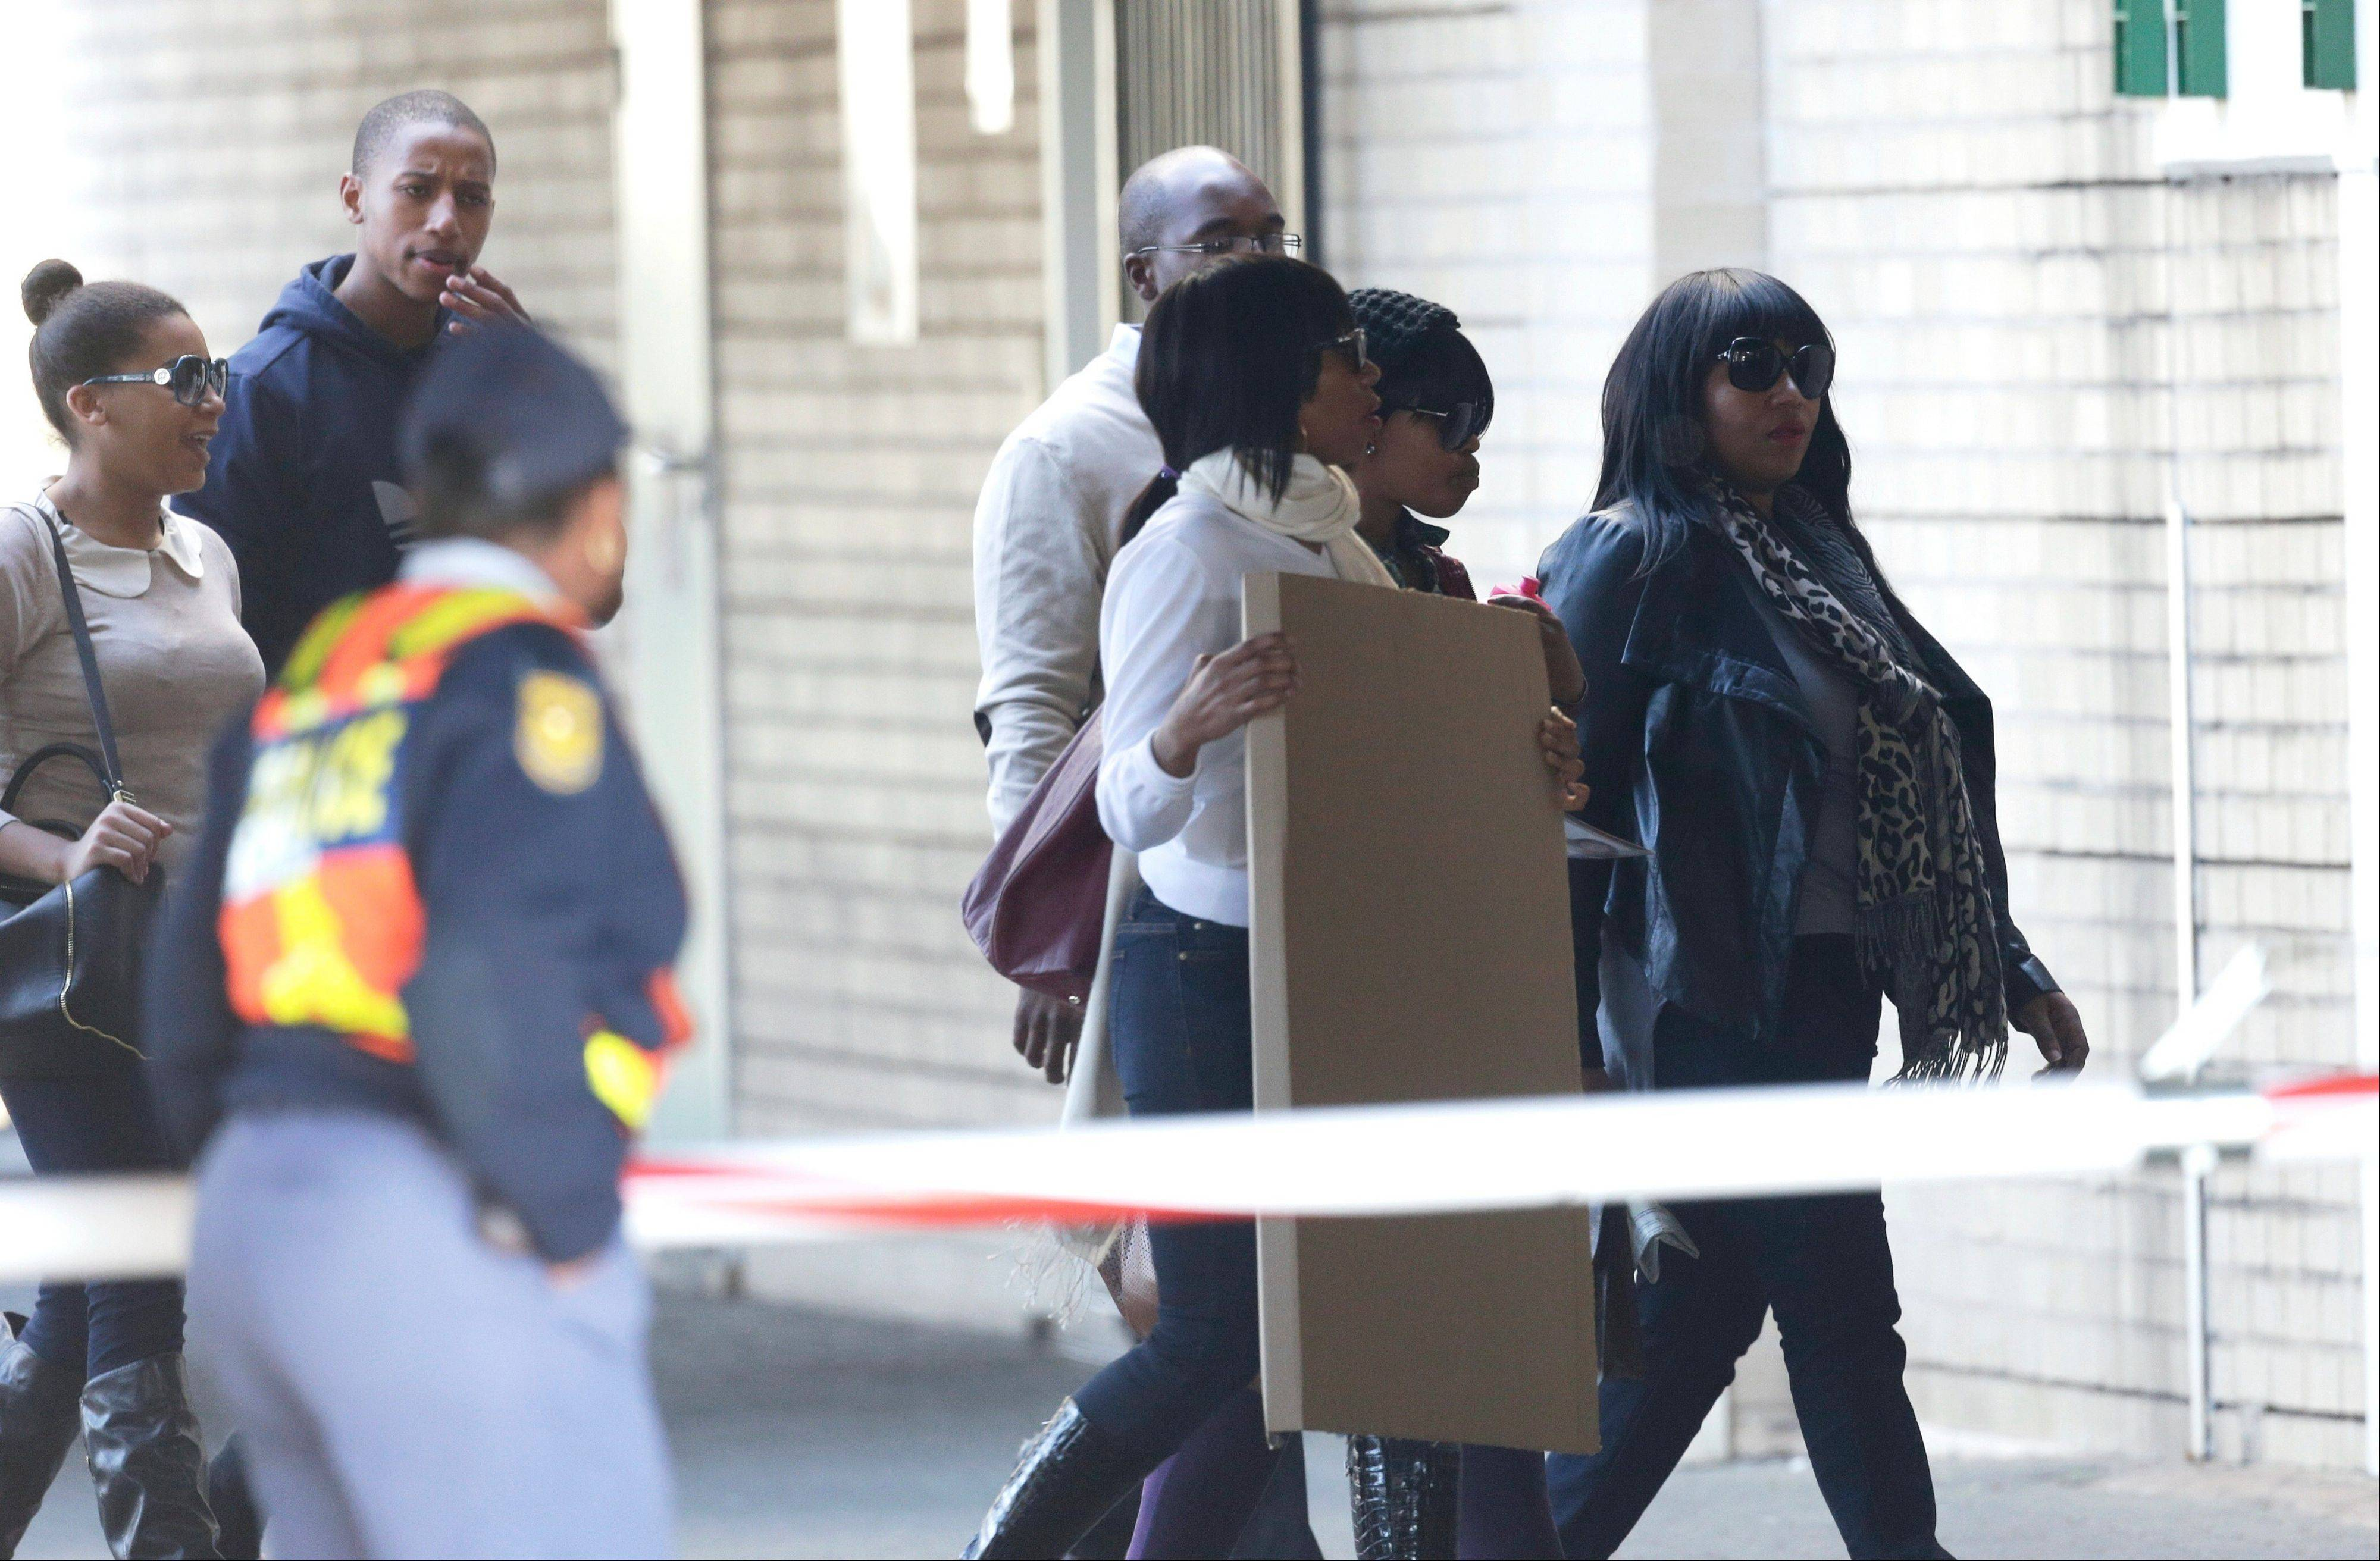 Nelson Mandela's granddaughter Zaziwe Diamini Manaway, right, arrives with other relatives at the Mediclinic Heart Hospital where former South African President Nelson Mandela is being treated in Pretoria, South Africa, Wednesday, July 3, 2013. Former President Nelson Mandela remained in a critical condition on Wednesday.